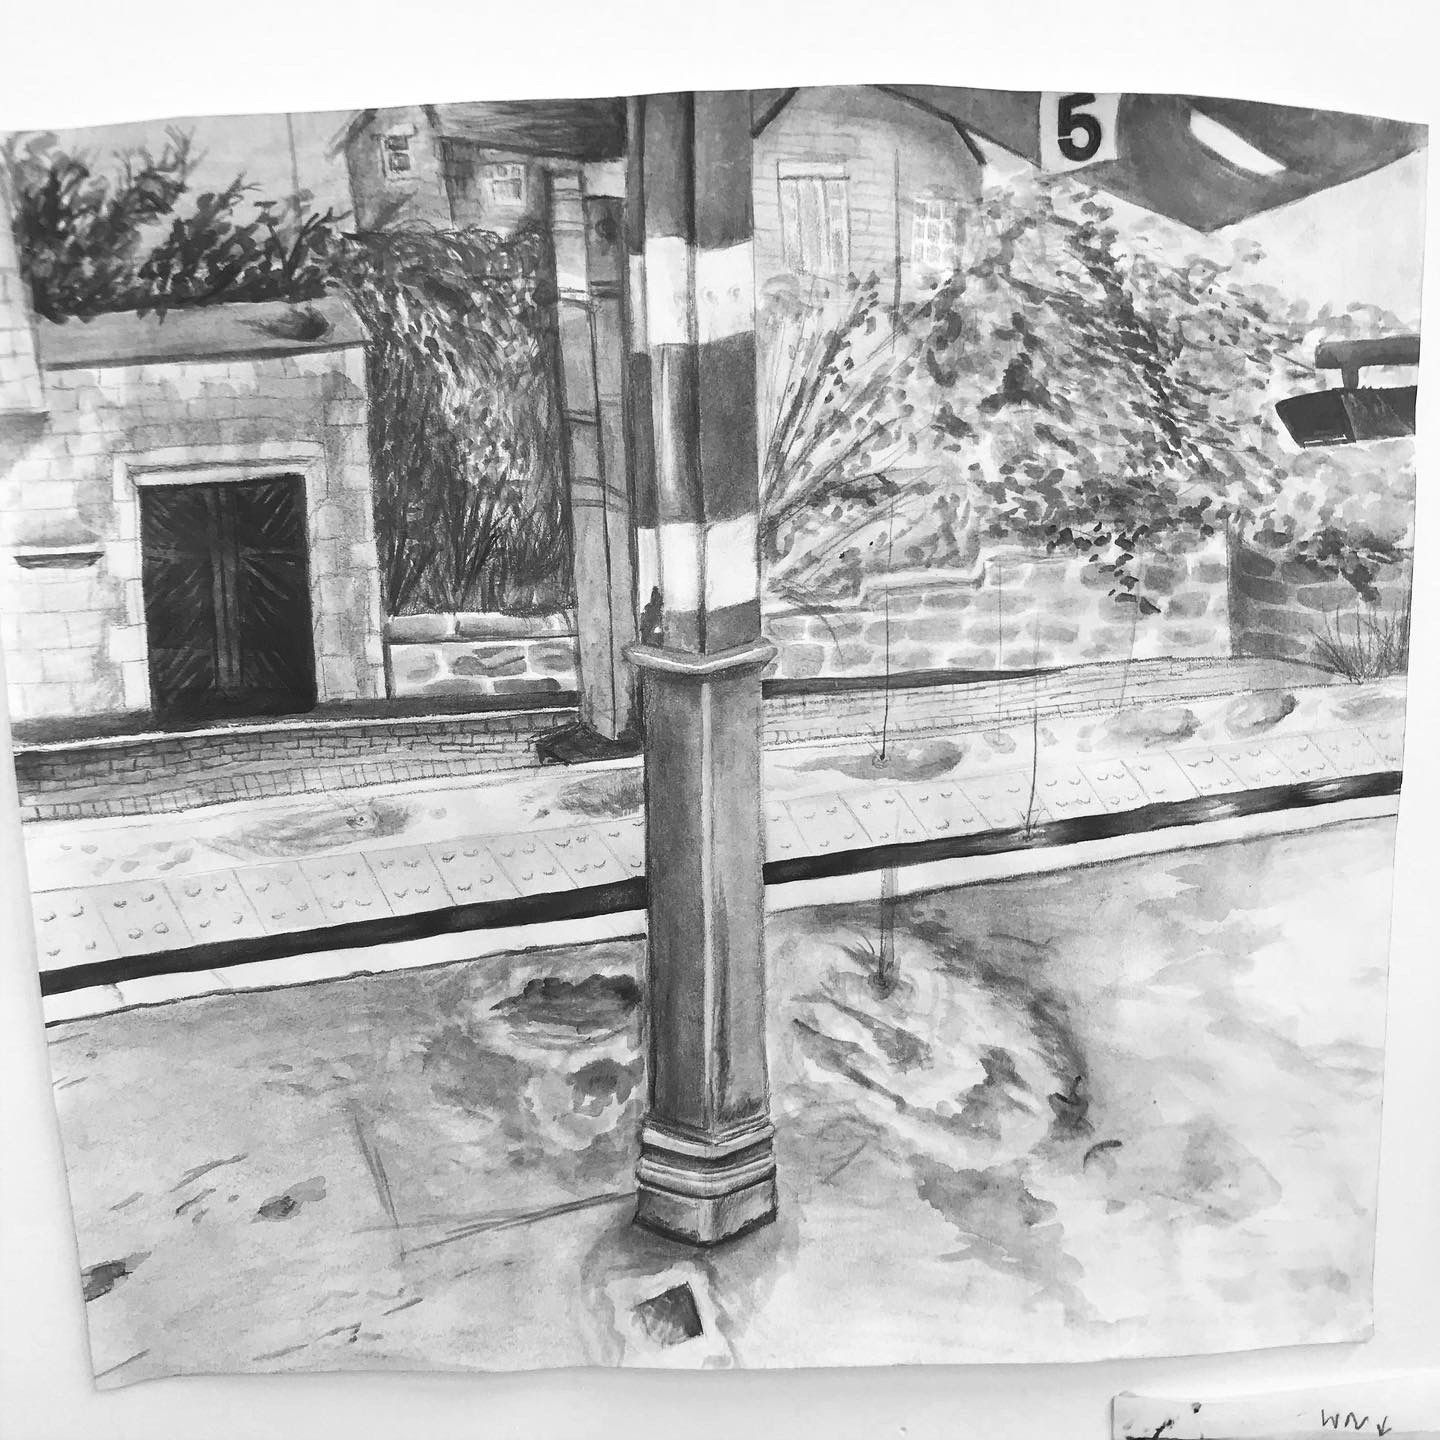 'Lancaster Station', water-soluble graphite on paper, [21 x 29.7cm] (2019).